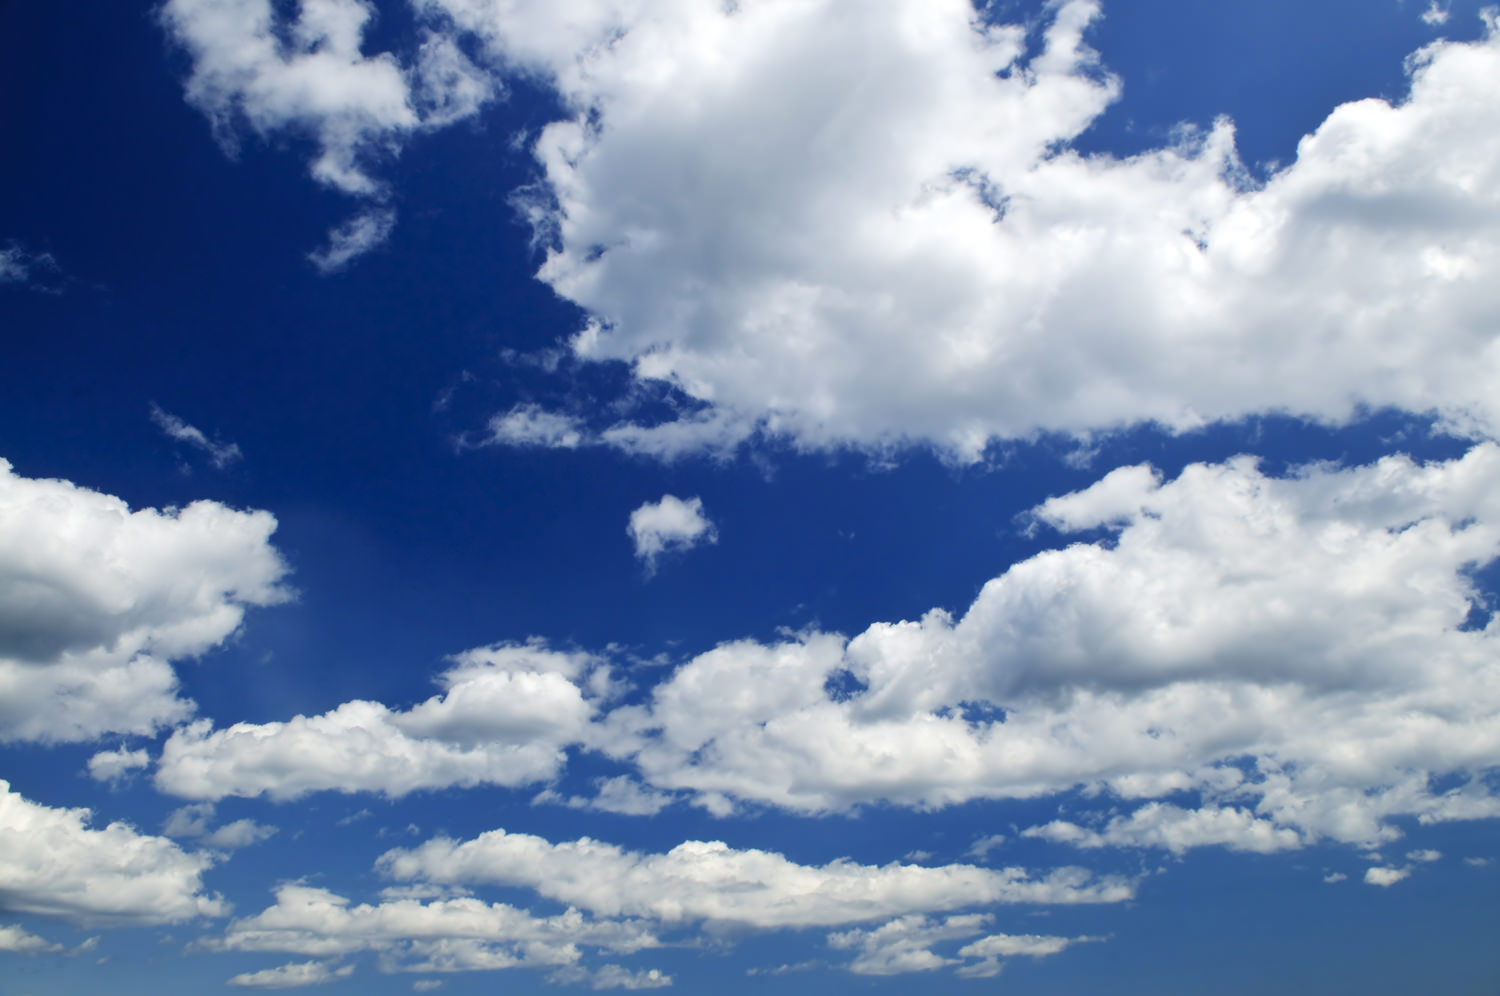 blue-sky-with-white-clouds